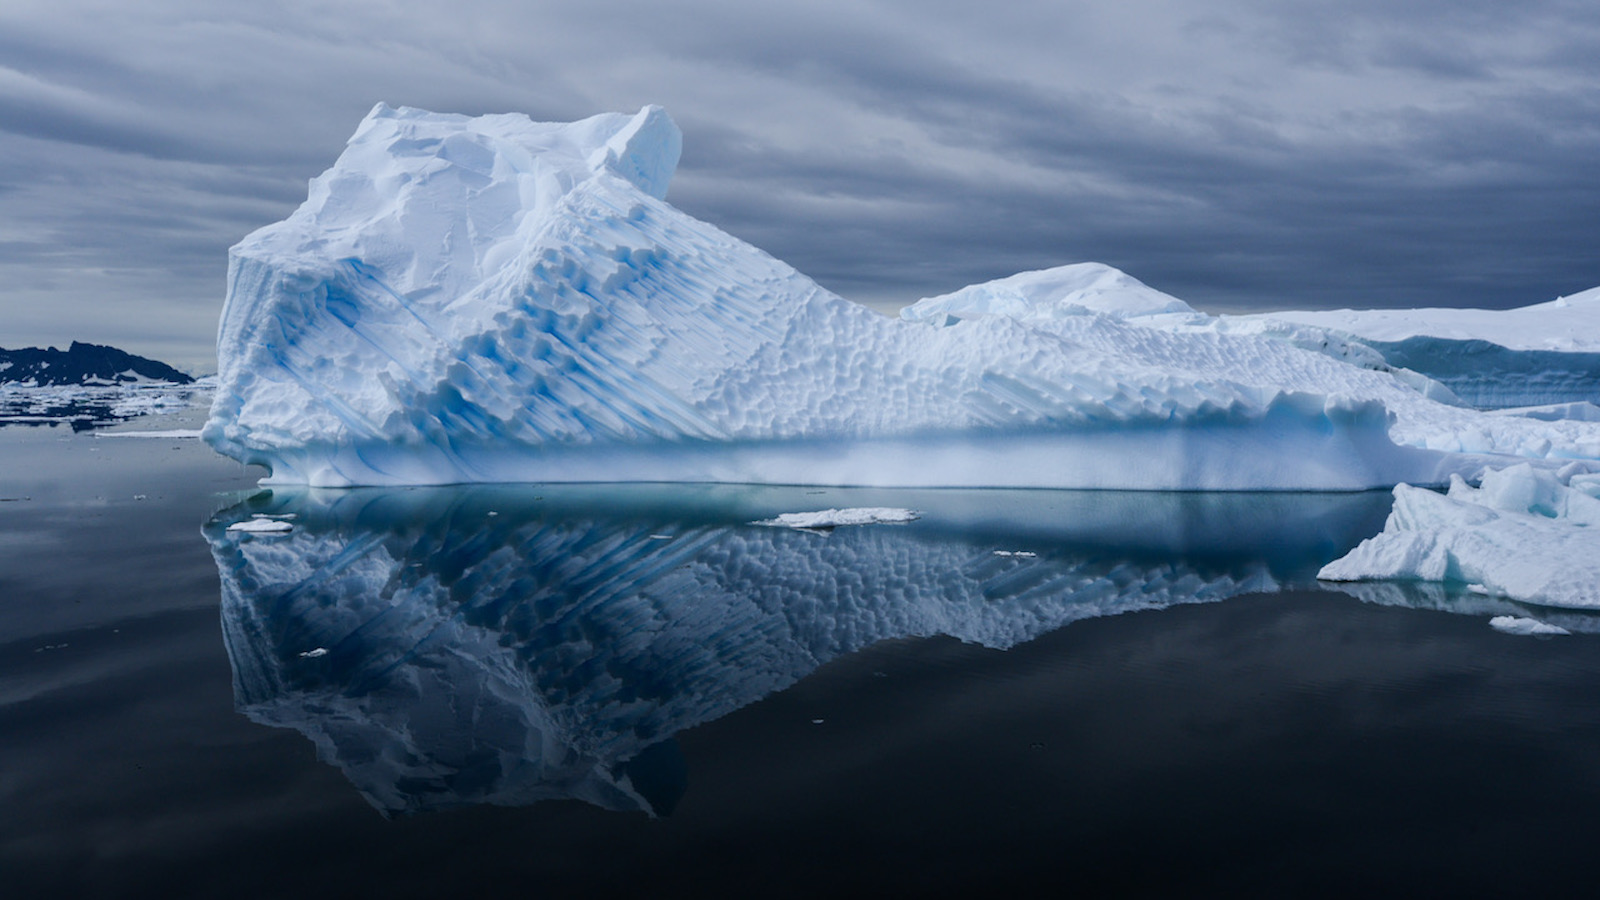 a floating iceberg in the antarctic